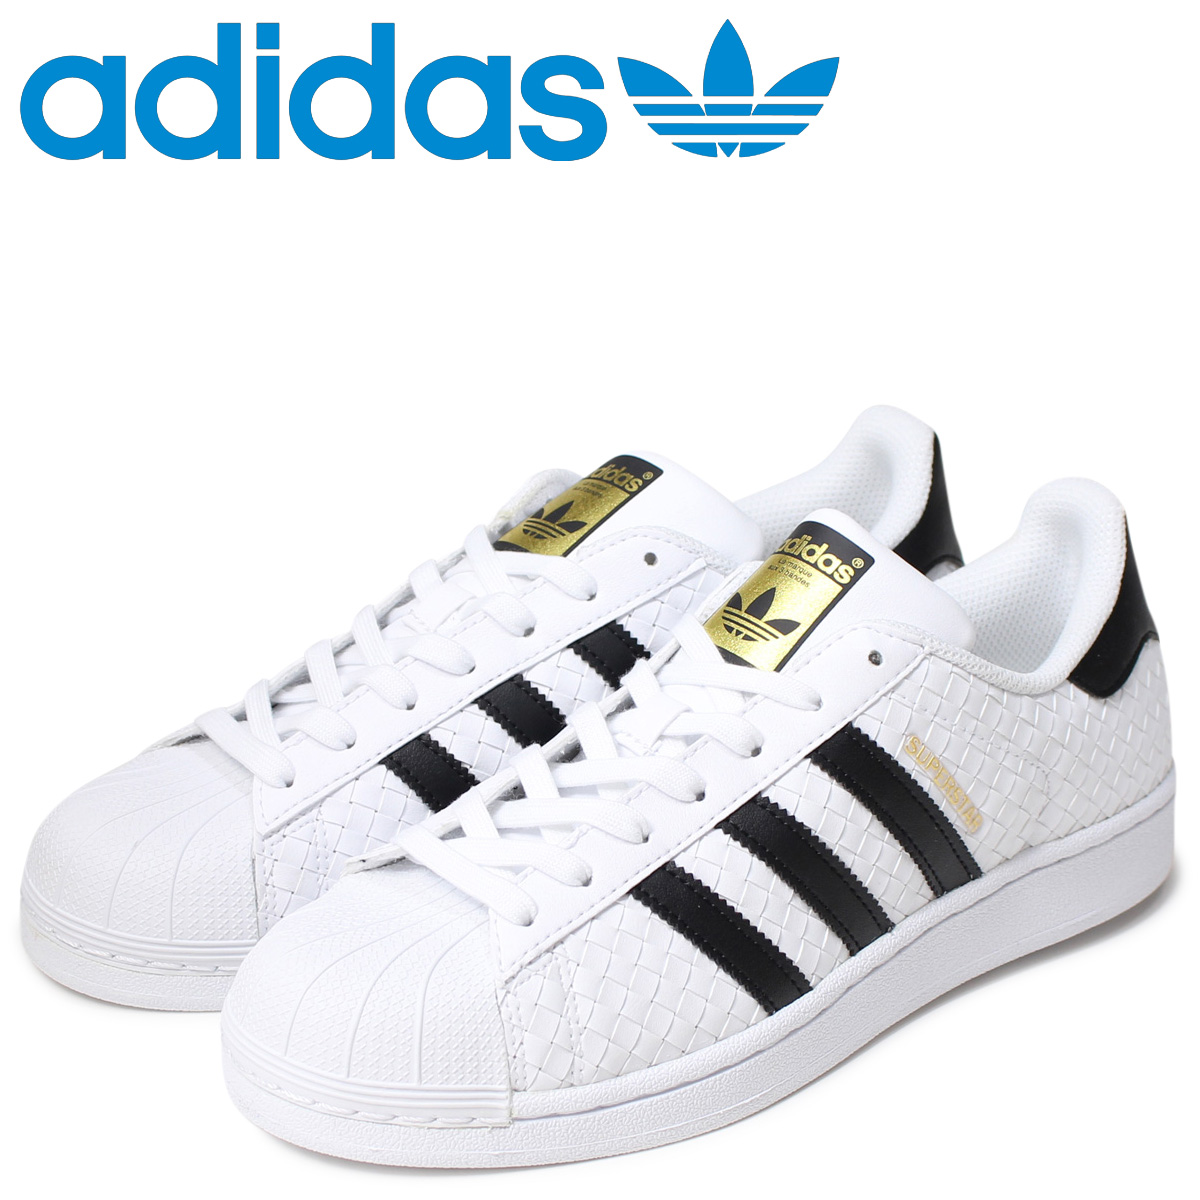 Adidas superstar adidas Originals men sneakers SUPERSTAR BB1172 shoes white [12/22 Shinnyu load]